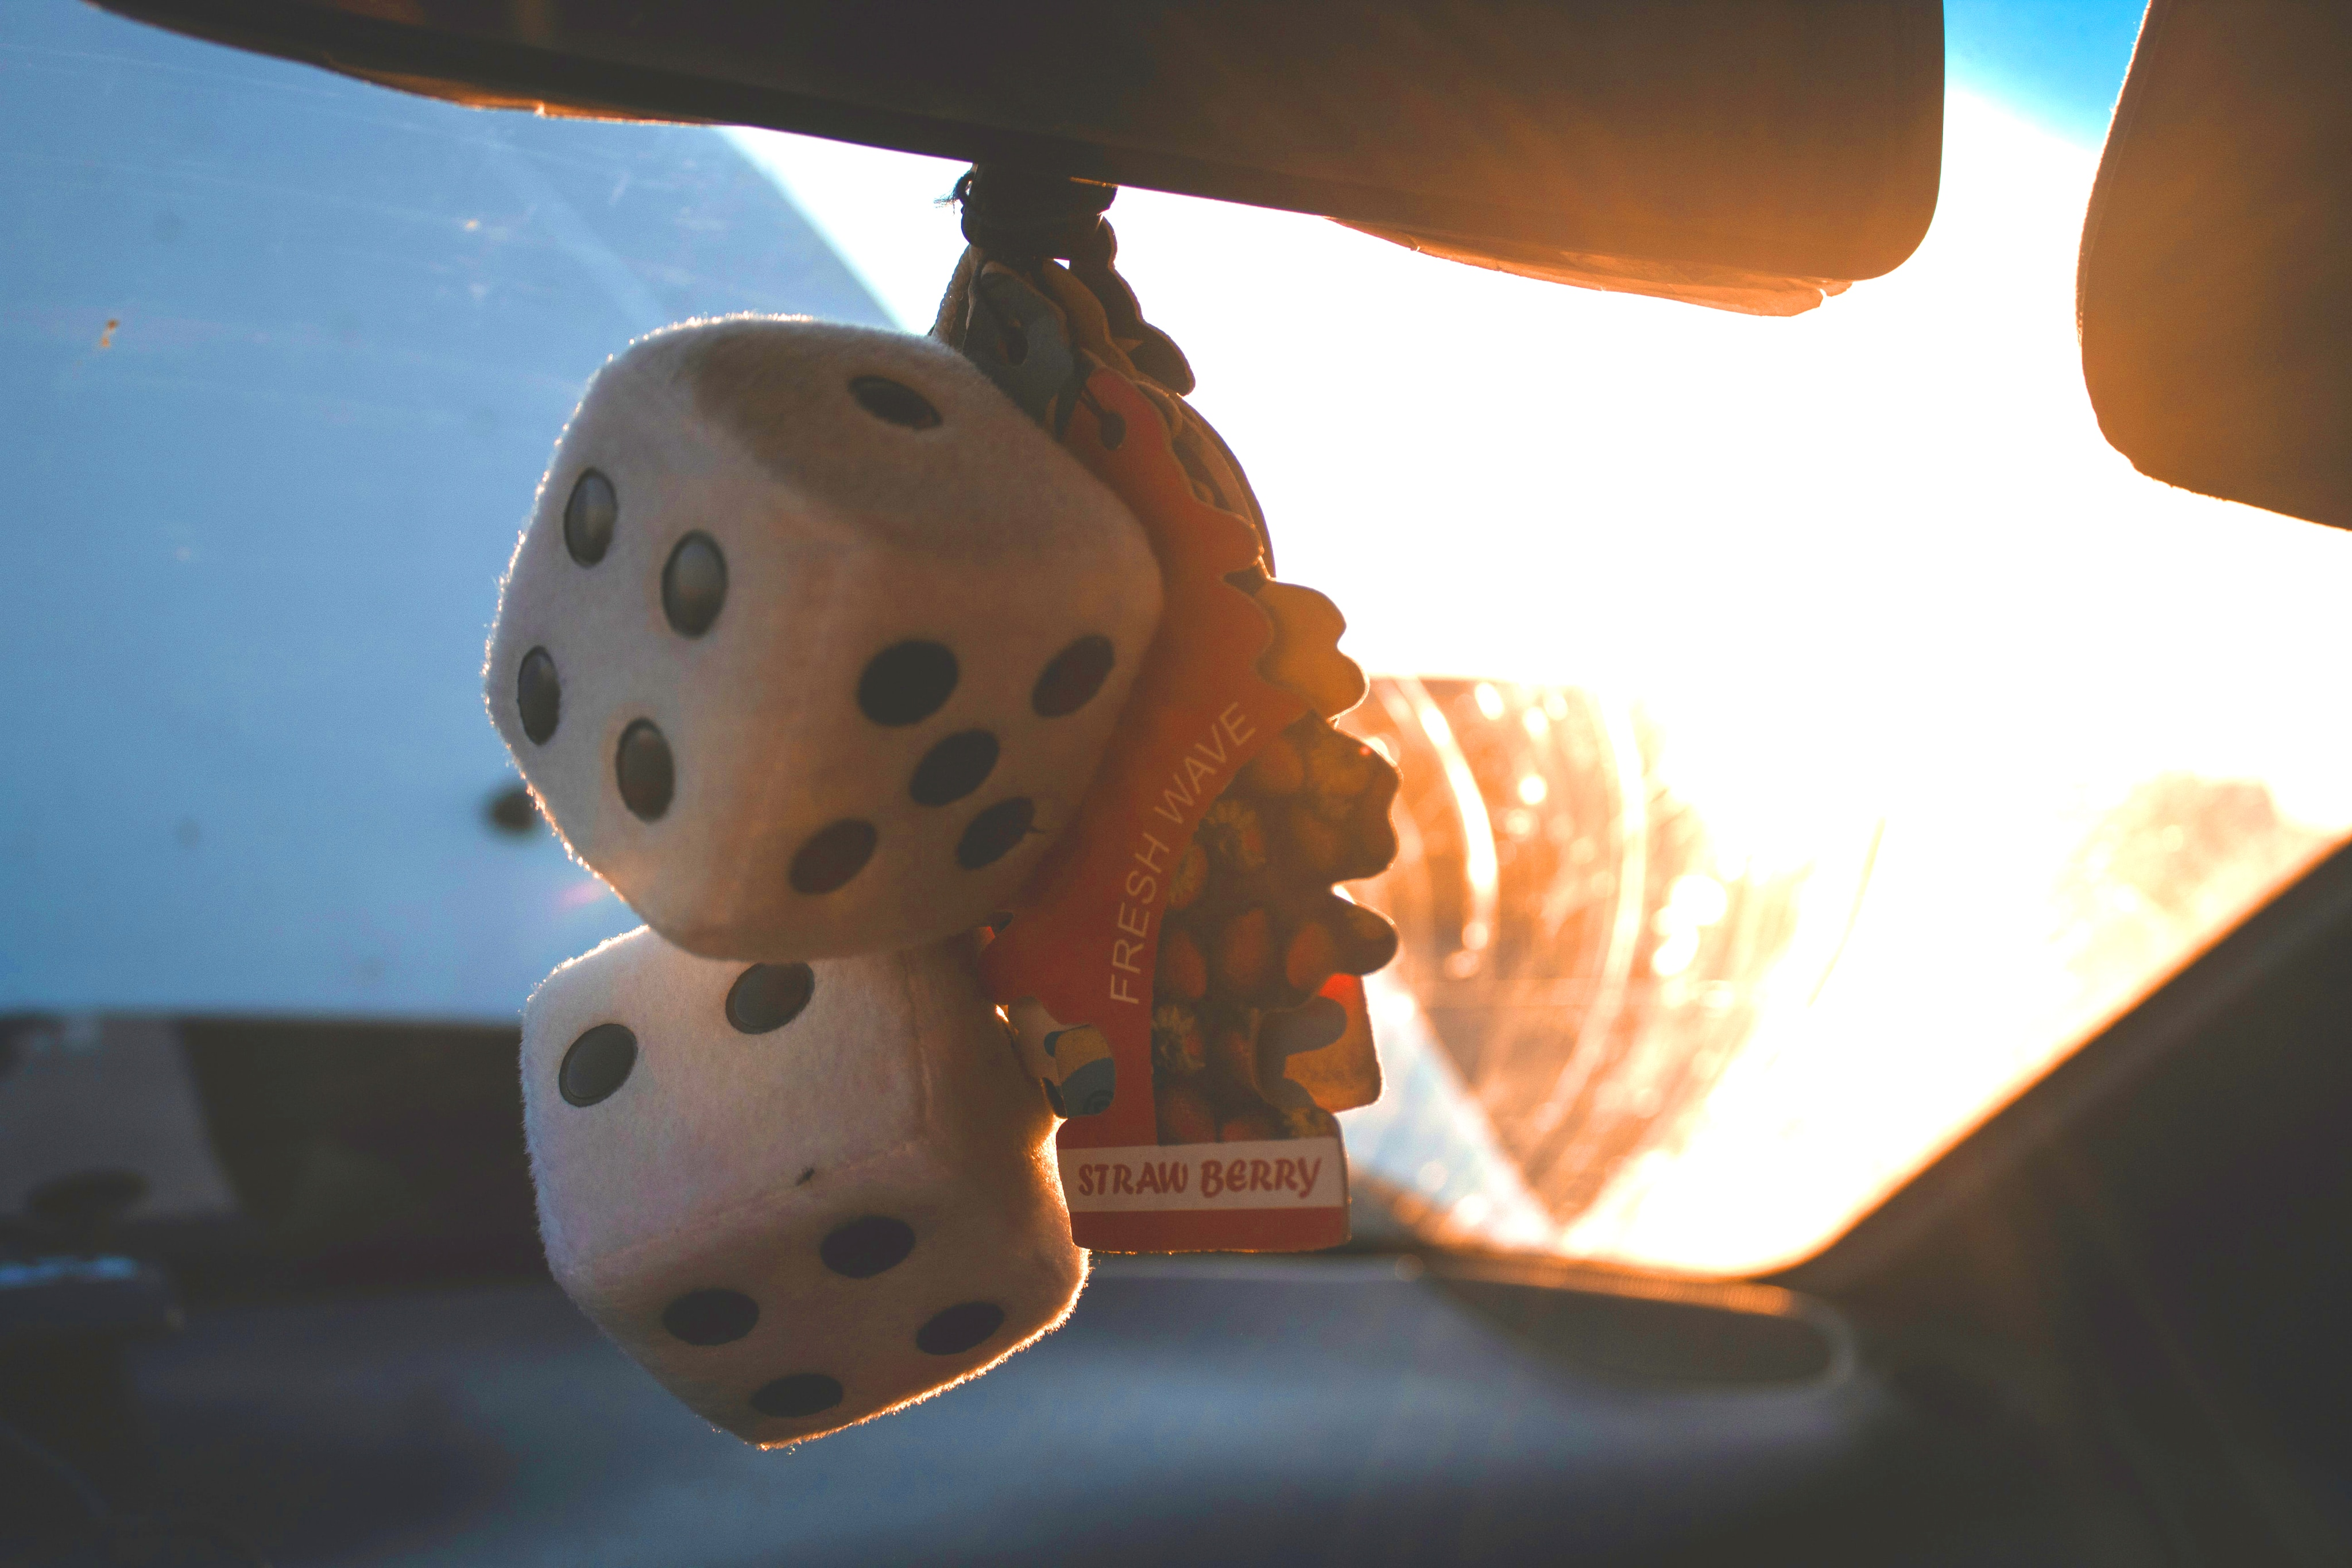 What you can get to personalize your vehicle at Boch Honda, Boch Toyota, Boch Nissan, Boch Hyundai, Boch Chevrolet, Genesis of Norwood, Boch Toyota South, Boch Honda West, Boch Nissan South, & Boch New to You in Massachusetts | Fuzzy dice and car freshener inside vehicle